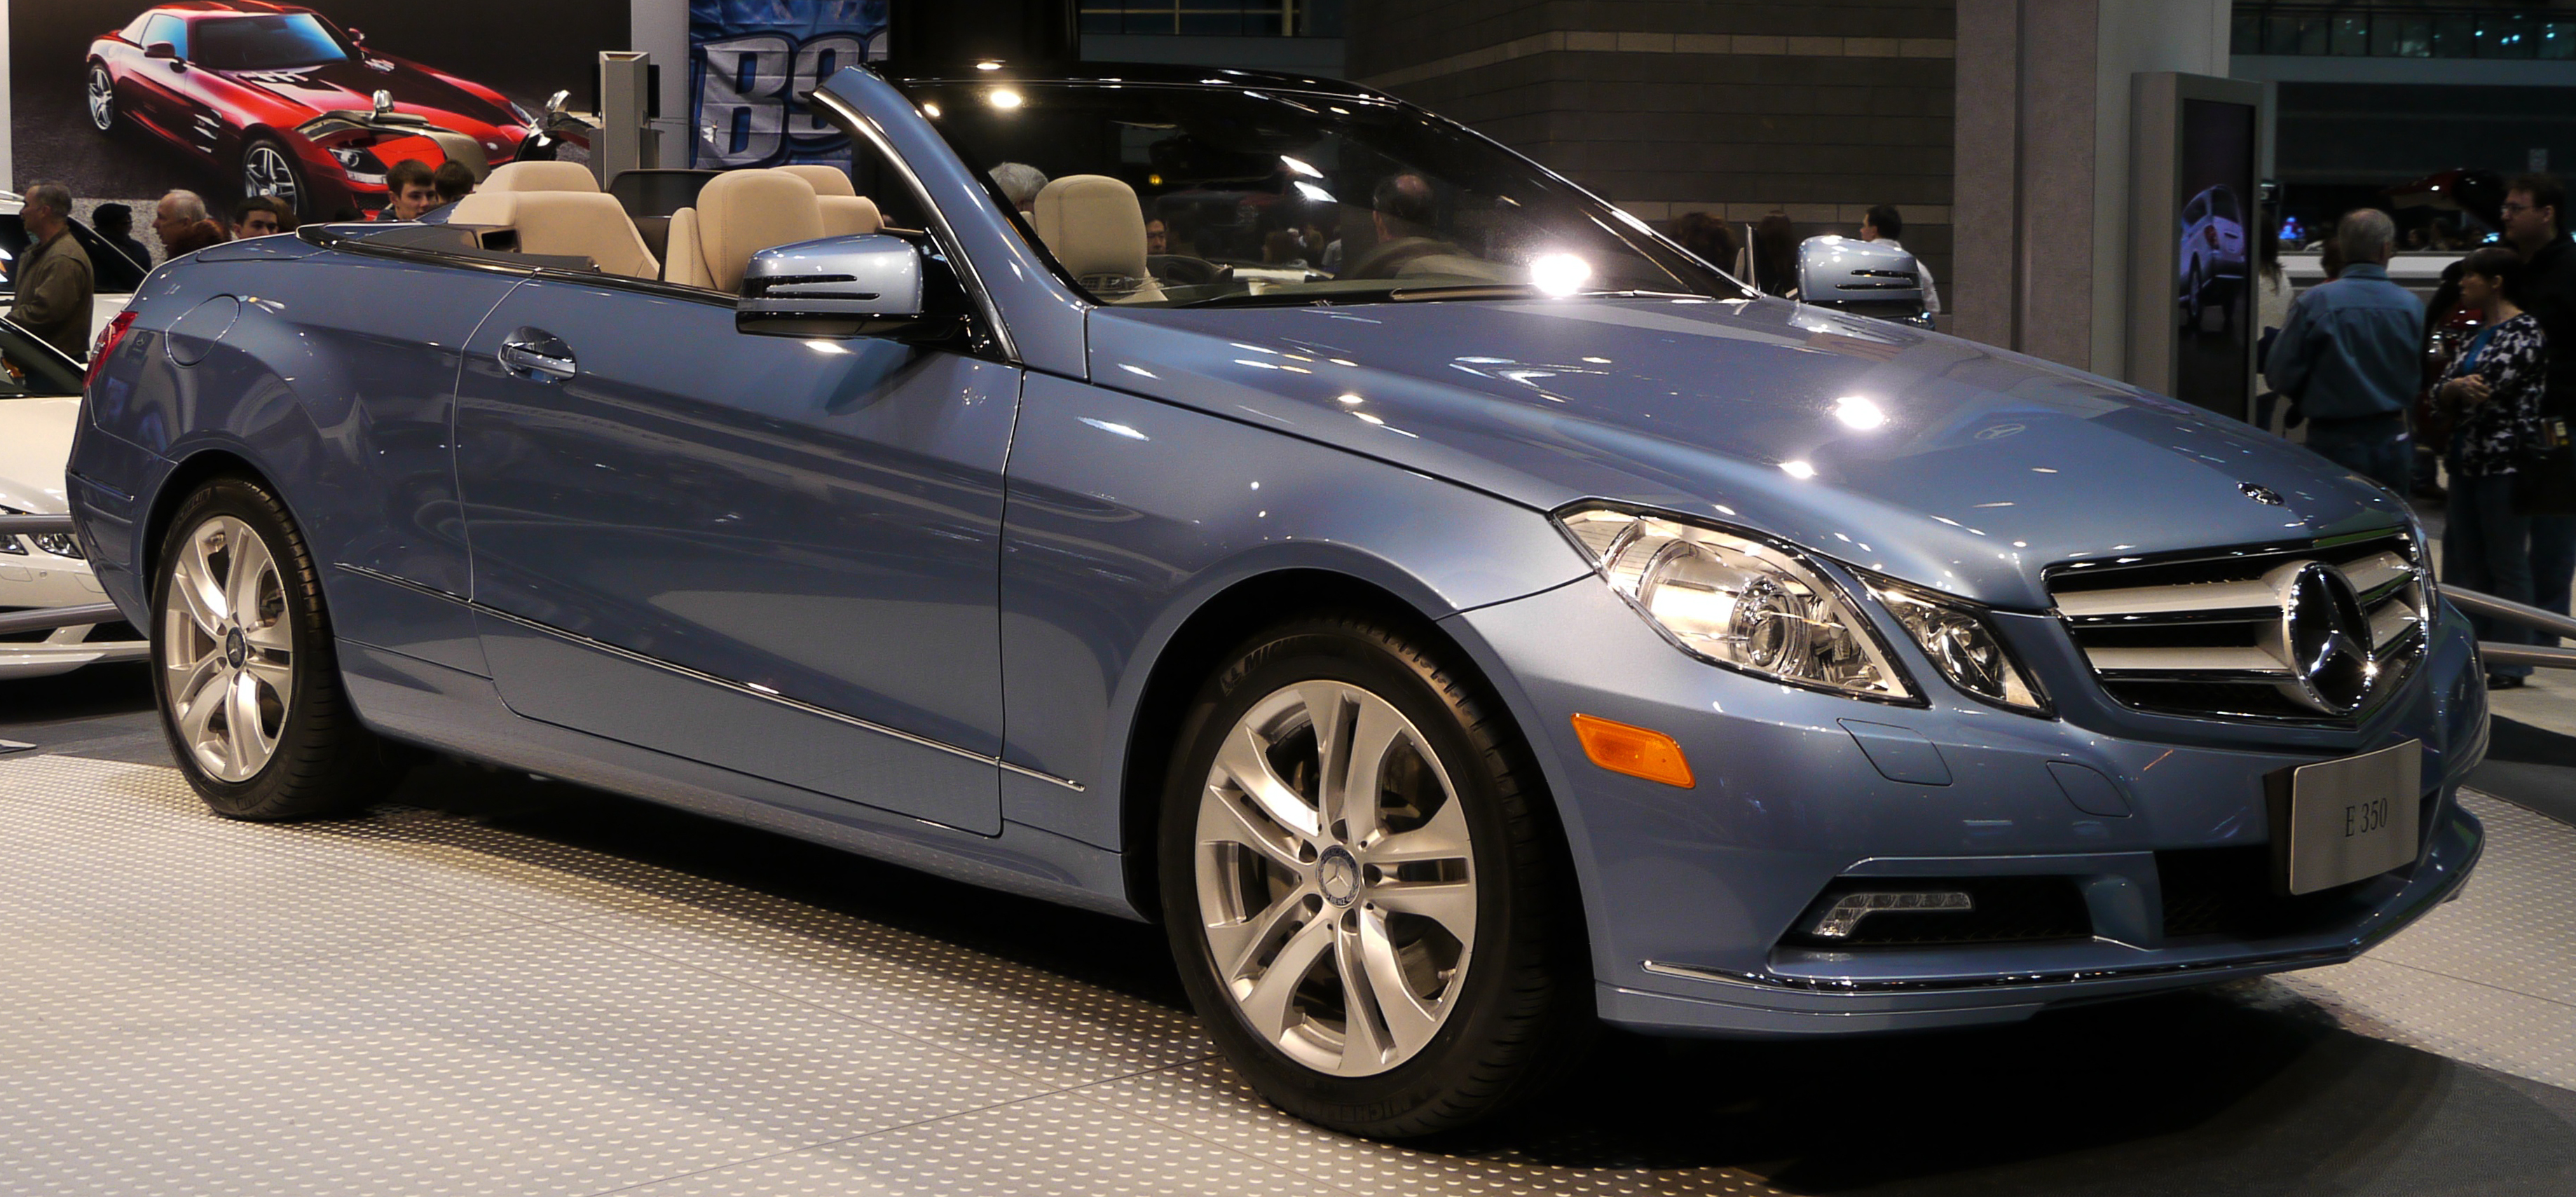 Image gallery mercedes 350 convertible for 2010 mercedes benz clk350